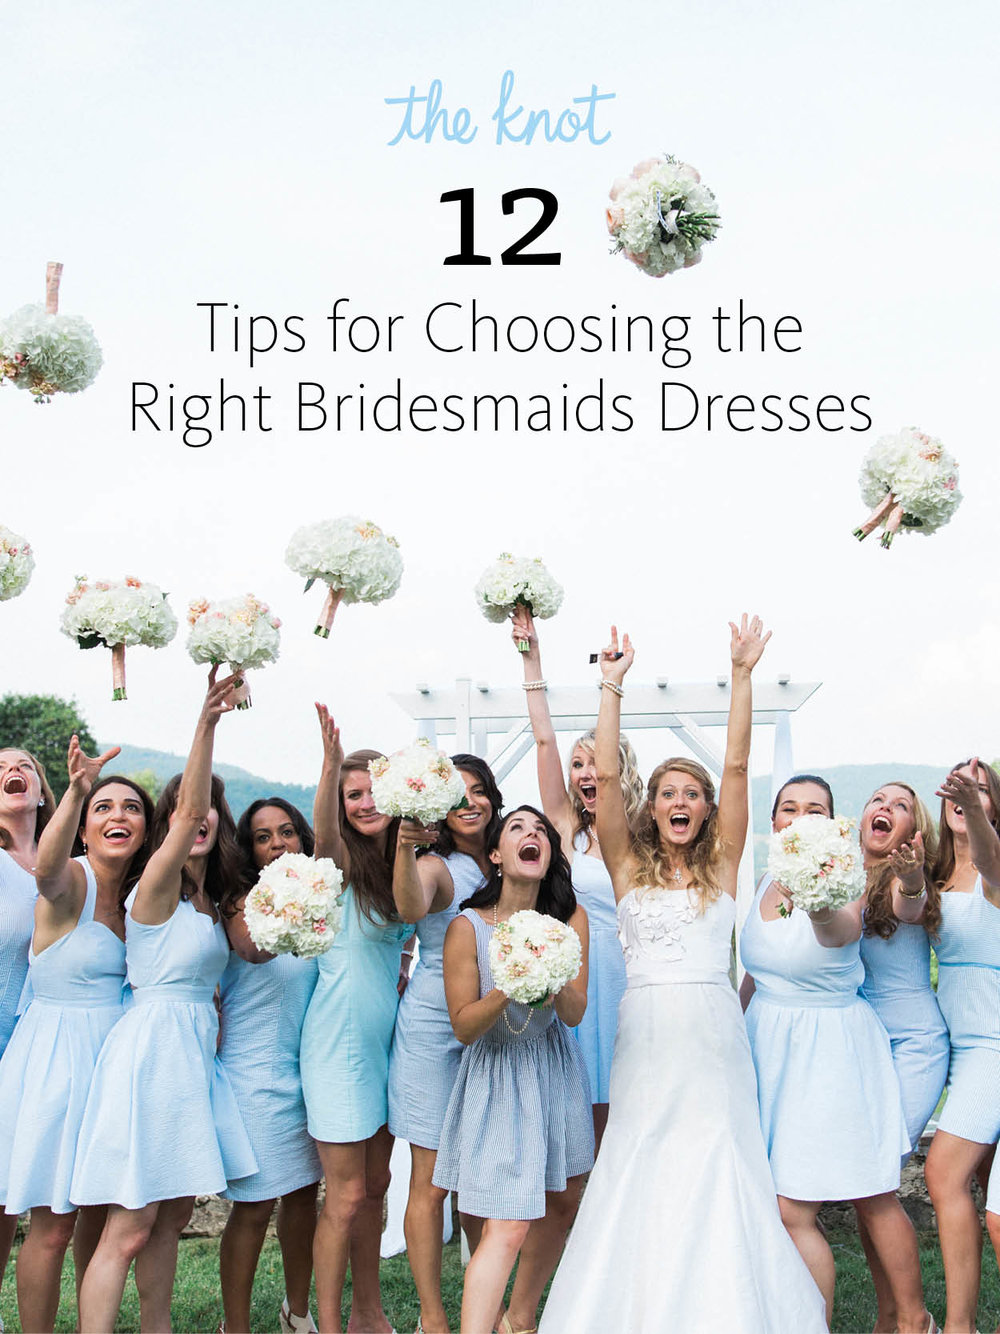 12+Tips+for+Choosing+the+Right+Bridesmaids+Dresses.jpg